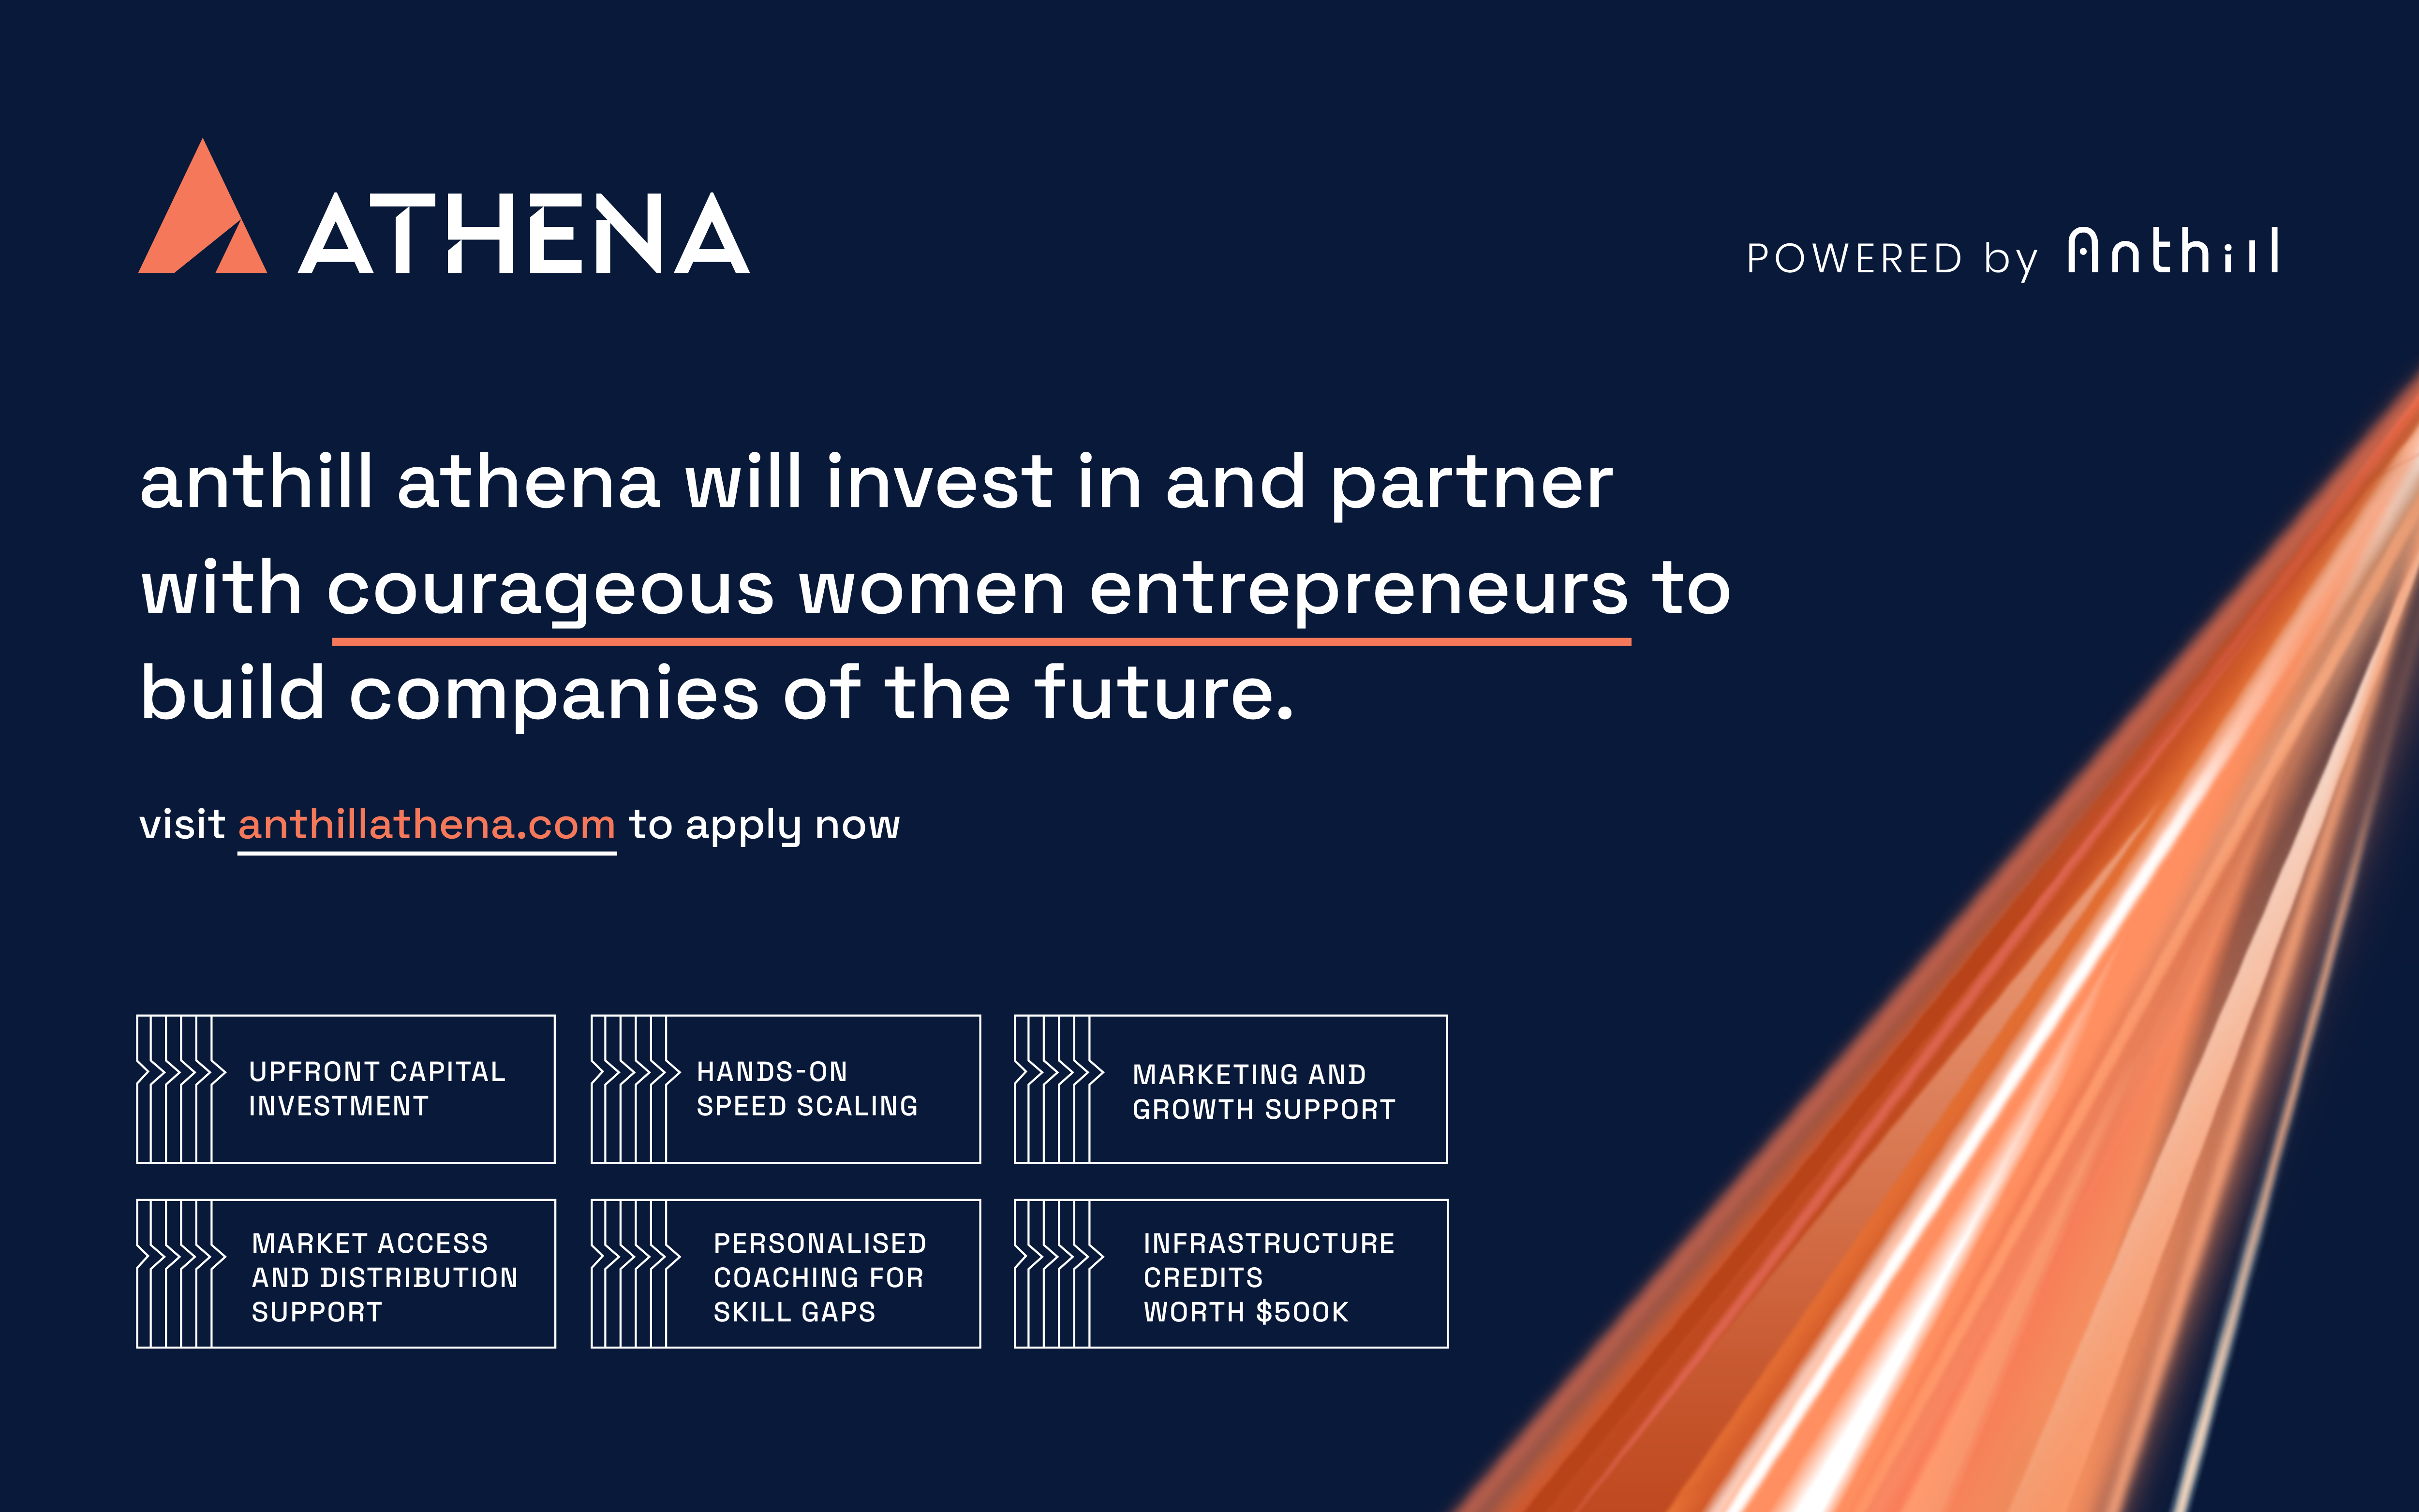 Athena is focused on enabling visionary female founders through capital and hands-on operational support in order to unlock the untapped potential of women in the Indian start-up ecosystem. Anthill Athena will invest in and partner with courageous women entrepreneurs to build companies of the future.